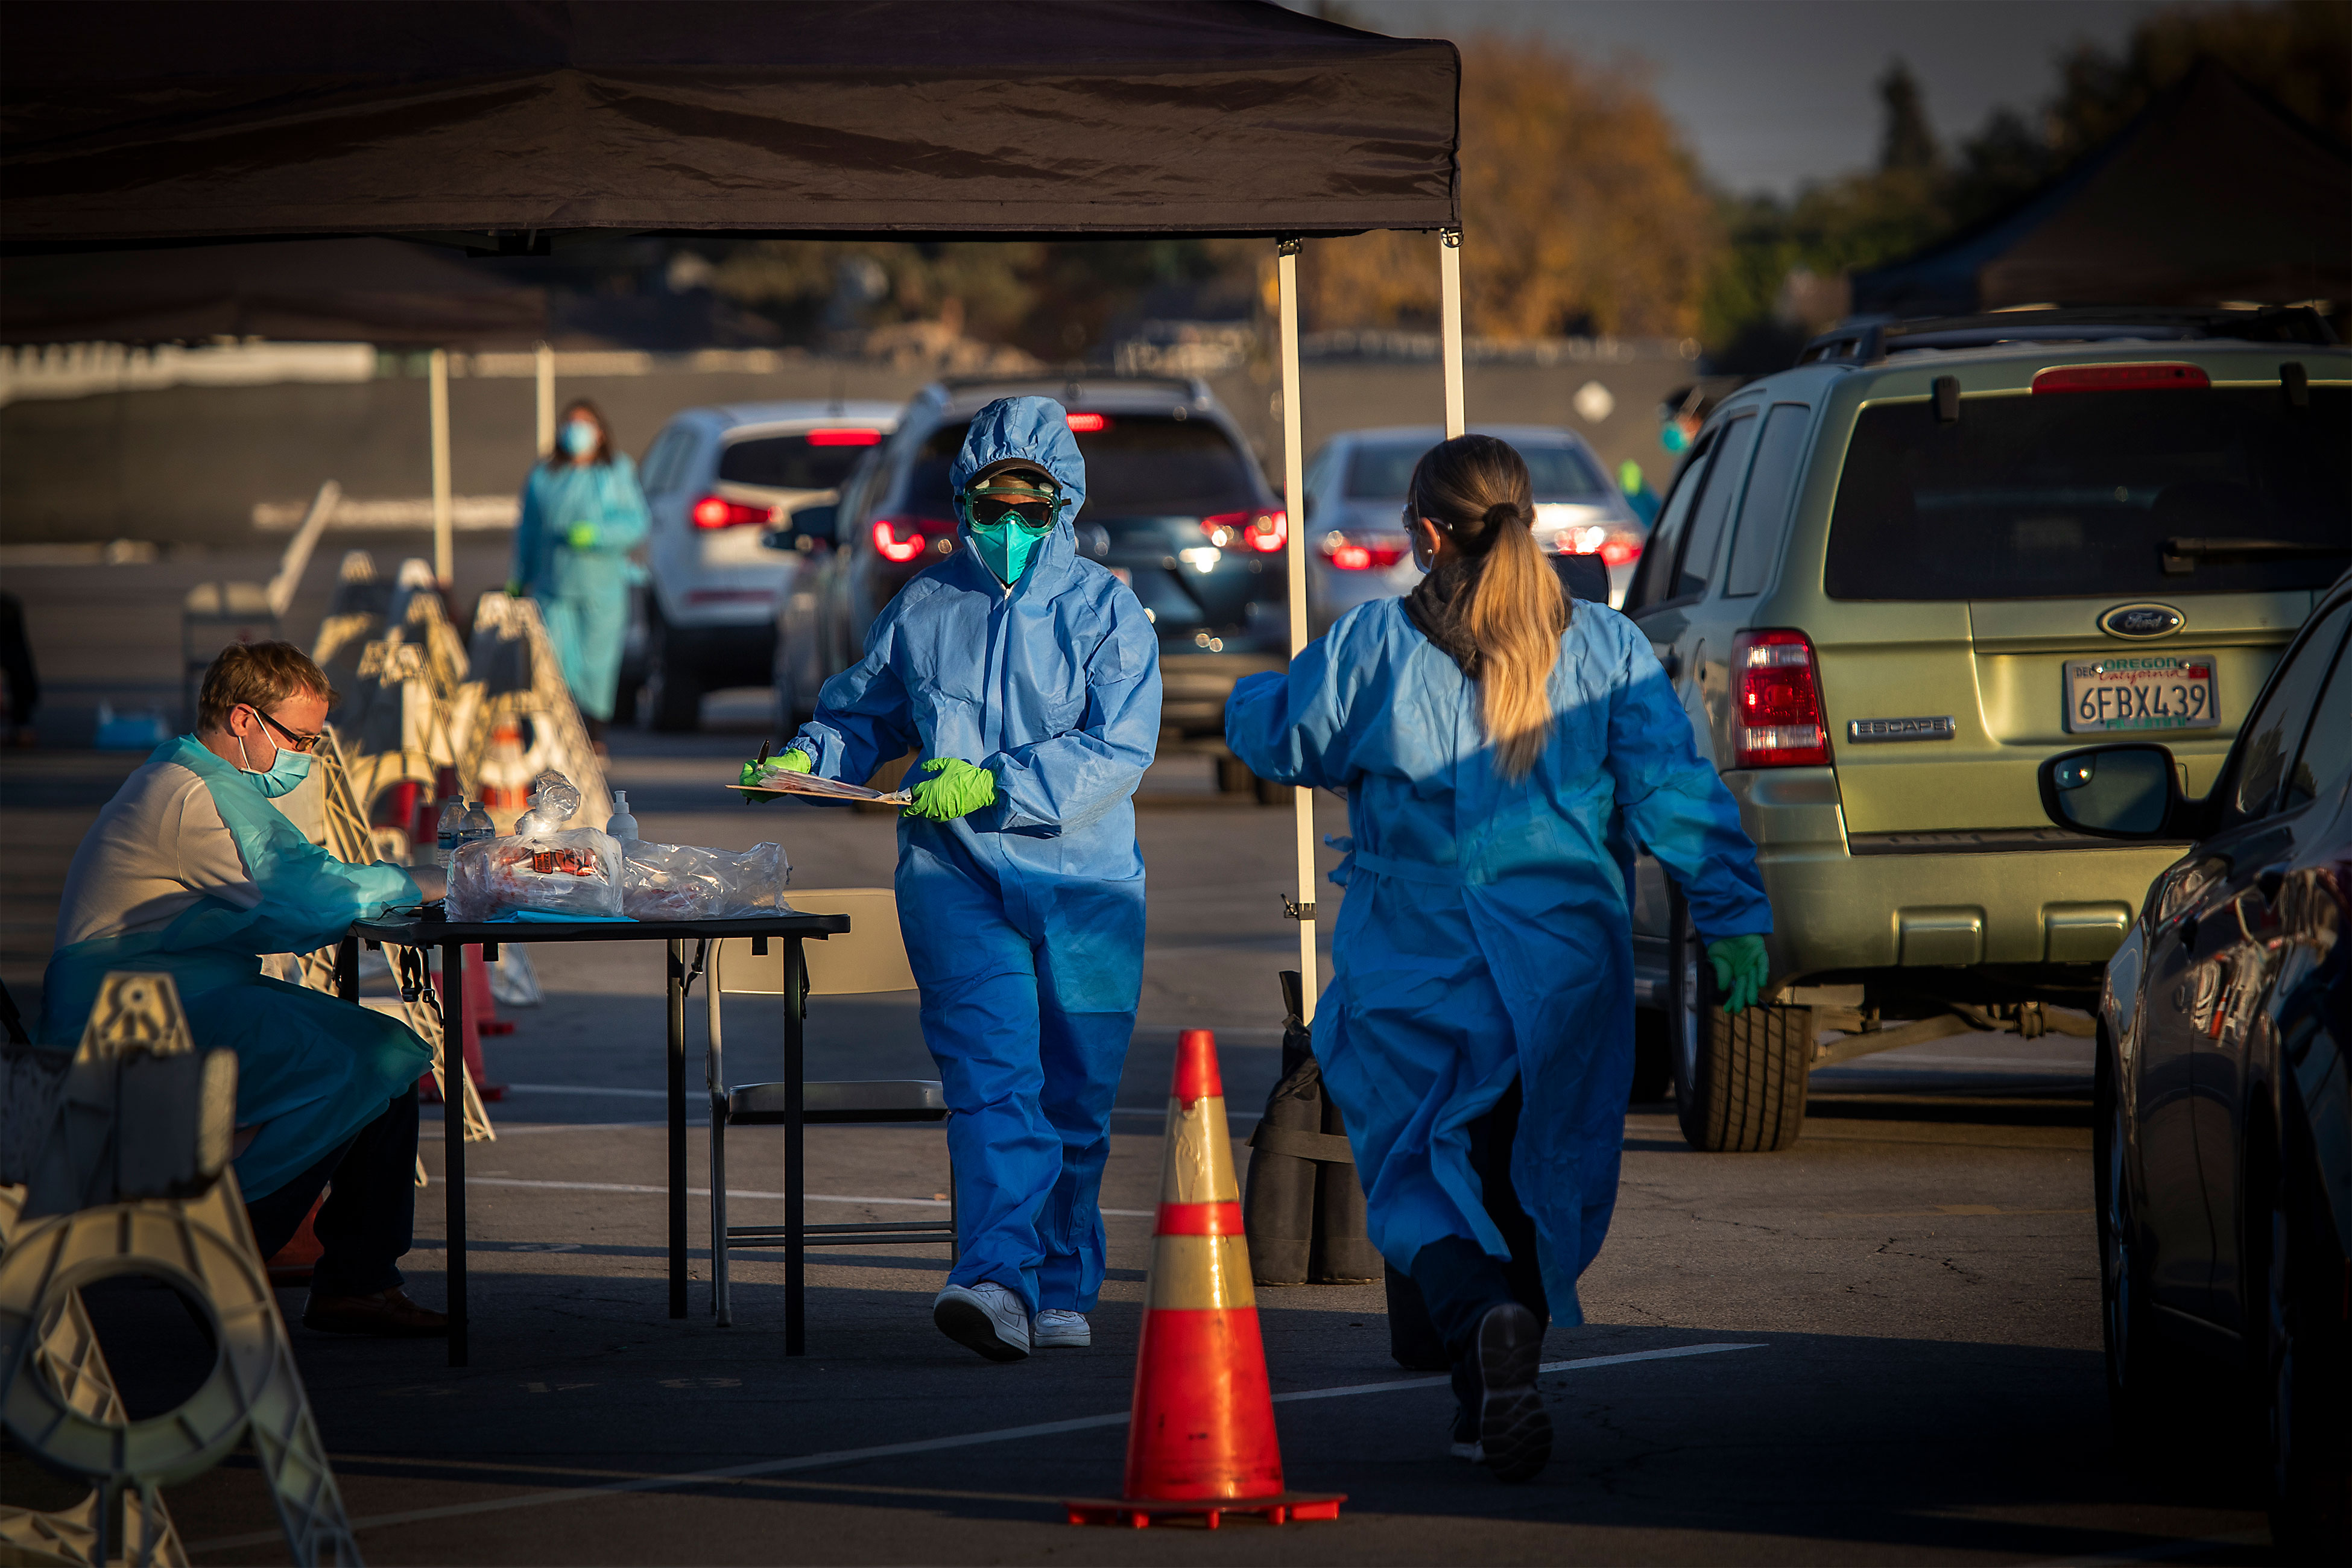 Health care workers in Long Beach, California, prepare and hand out Covid-19 self-administered tests on December 9.